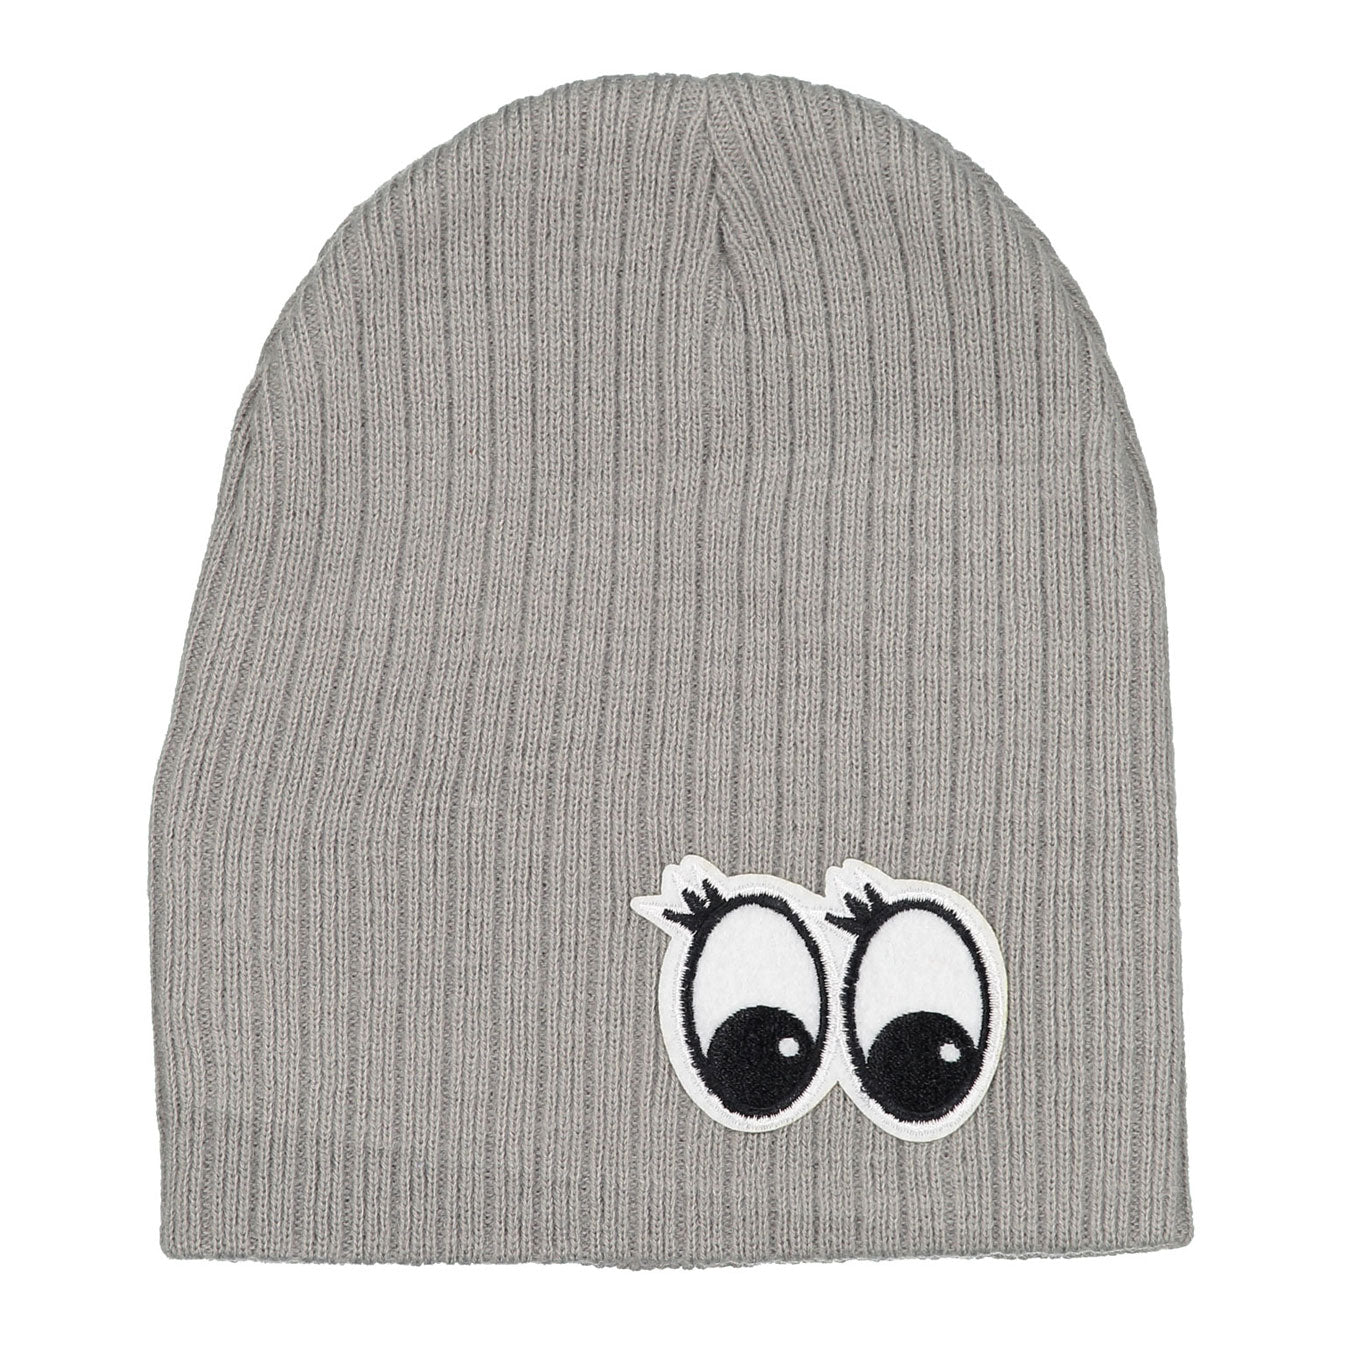 Firefly Grey Ribbed Eyes Hat - Ladida